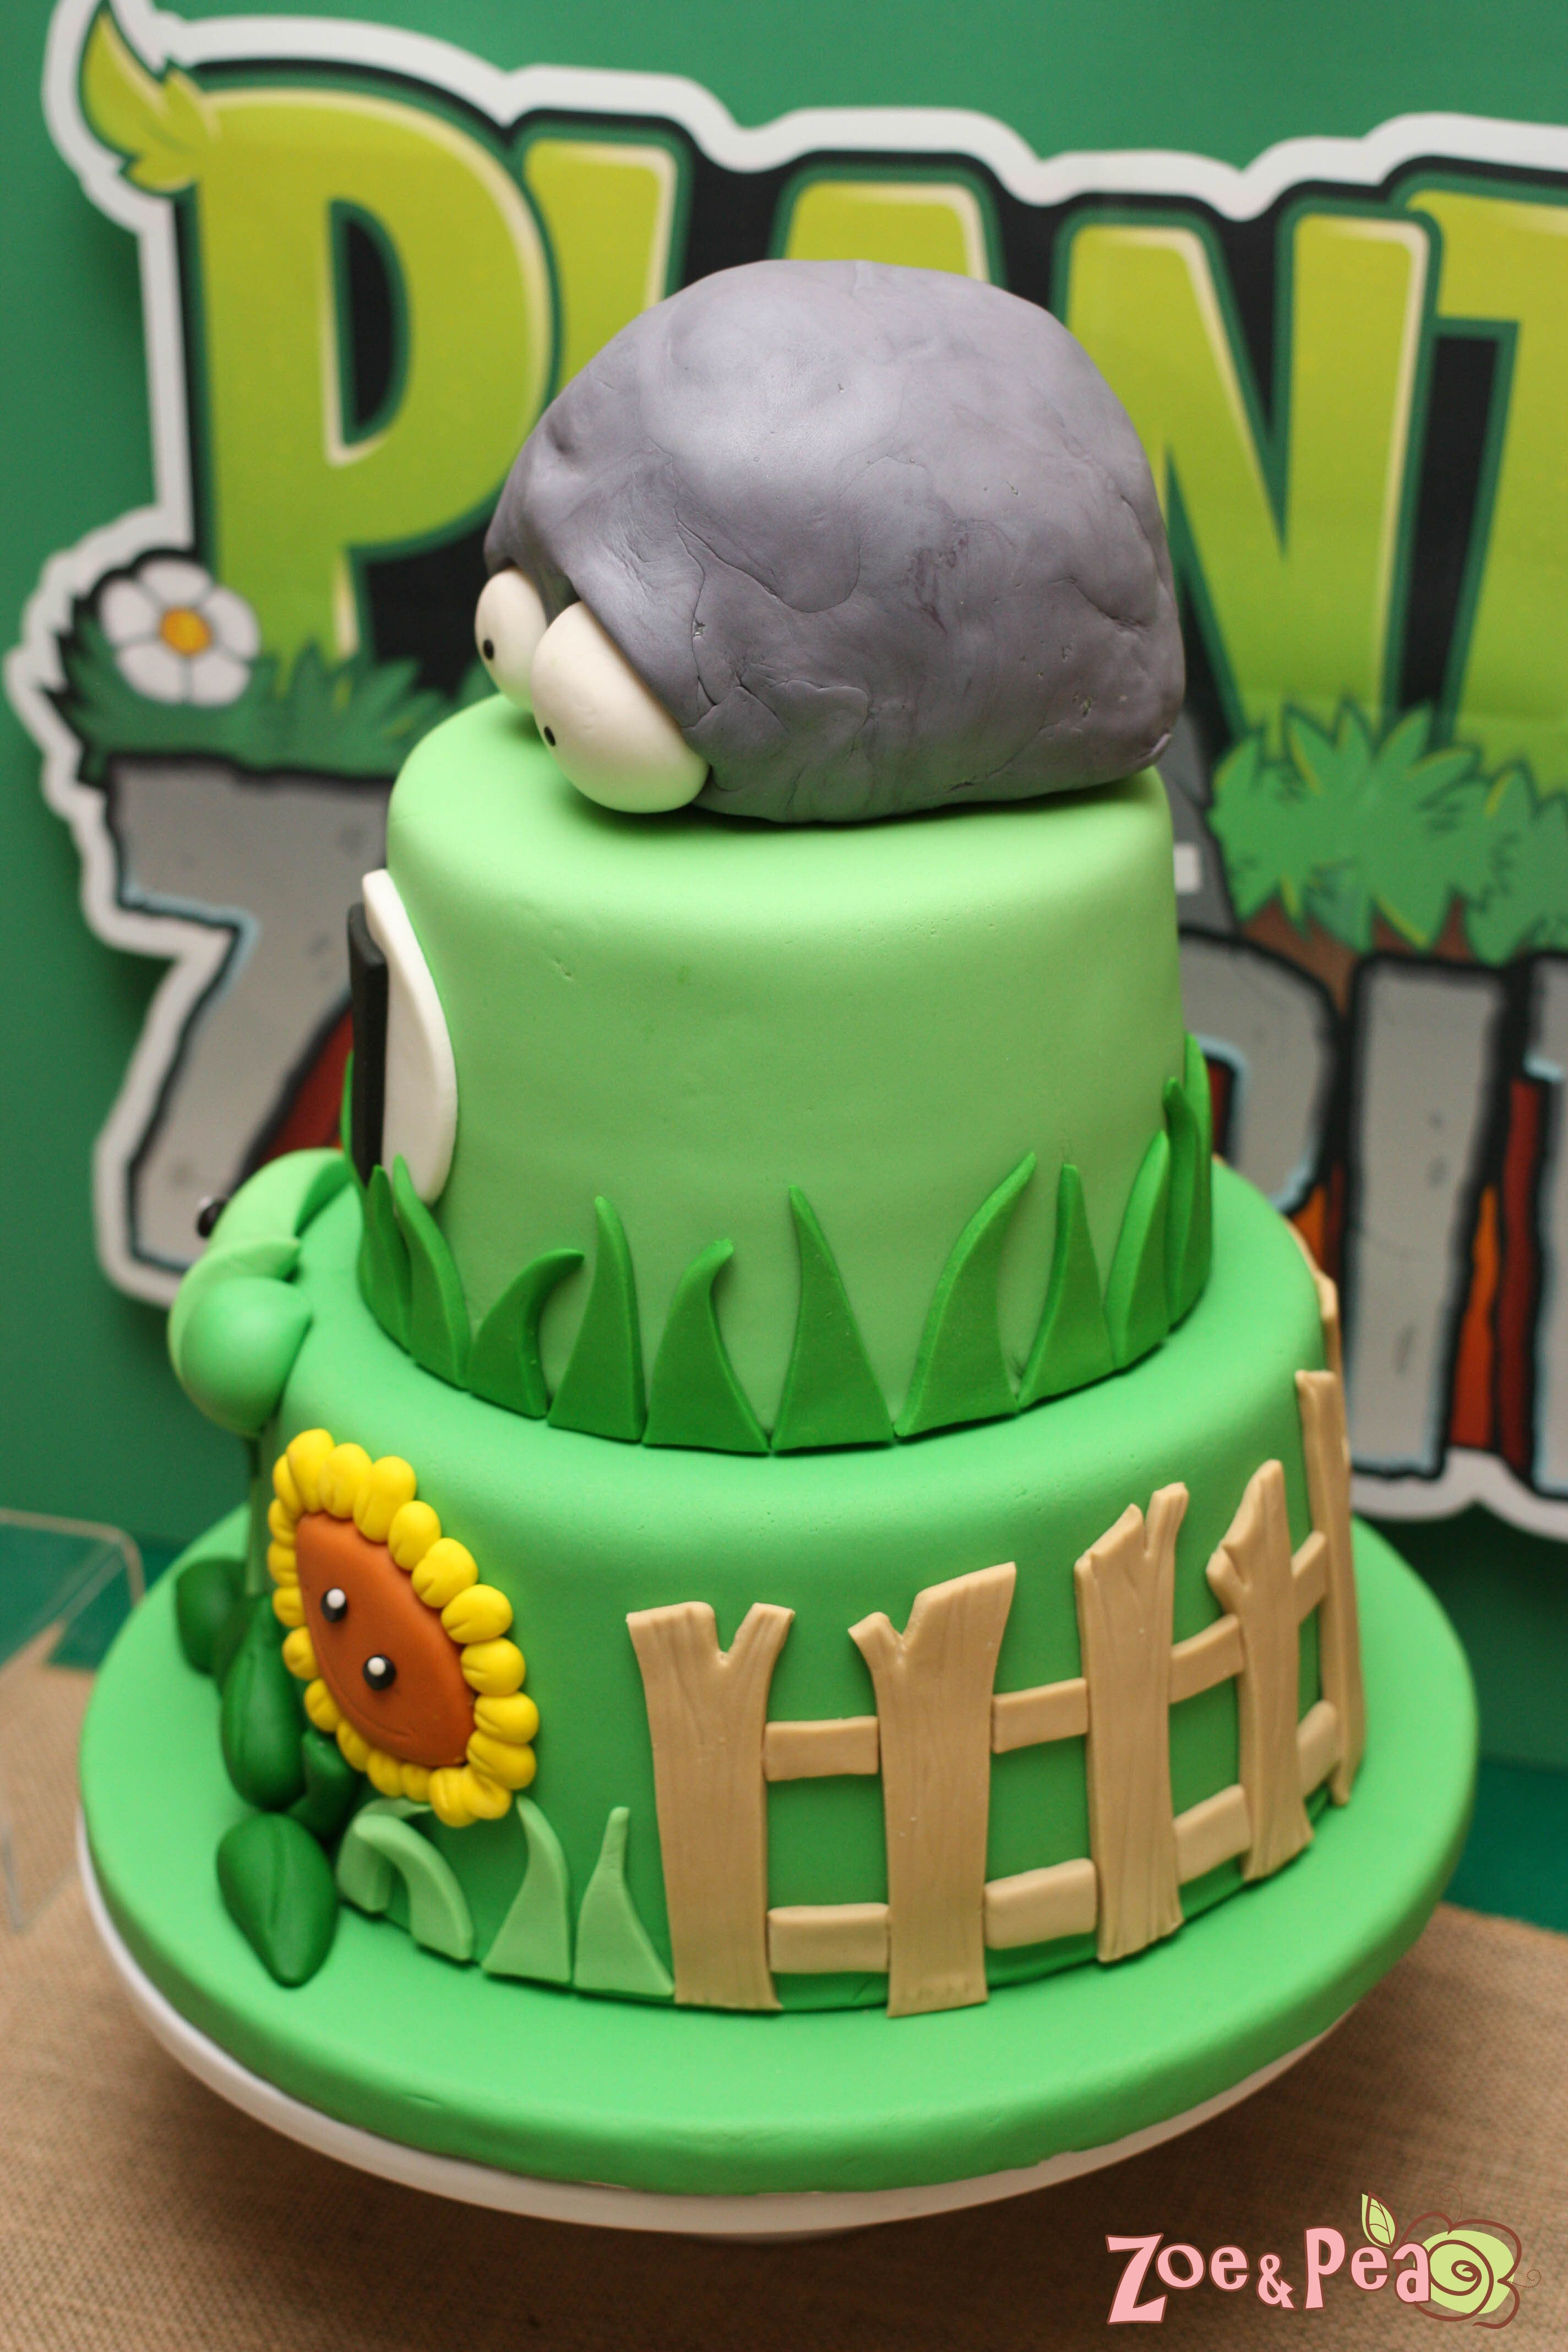 Plants Vs Zombies Birthday Cake Pin Tiffany Burns On Ideas For Kids In 2018 Plants Vs Zombies